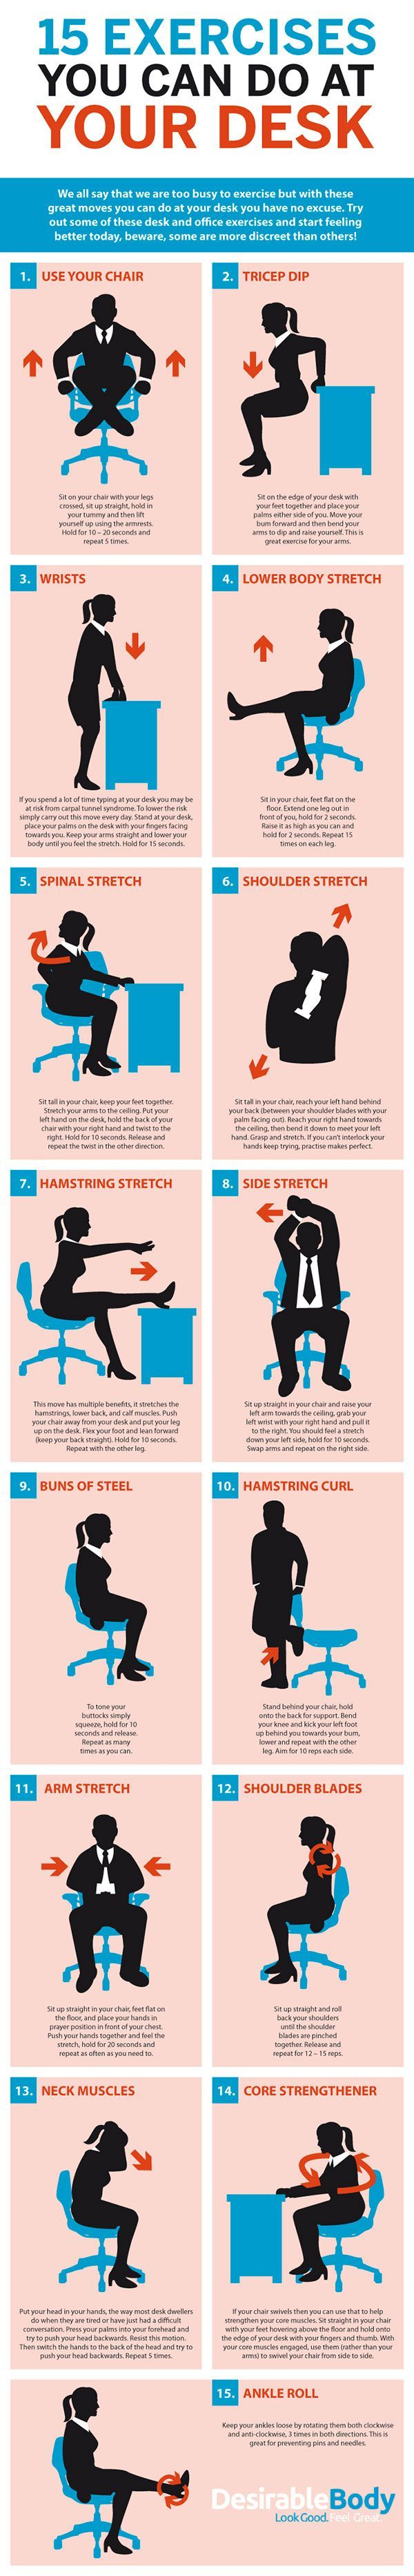 Sitting all day at your desk isn't good for you. If you can't get up a take a walk, a graphic from Desirable Body shows you some exercises you can do while at your desk.